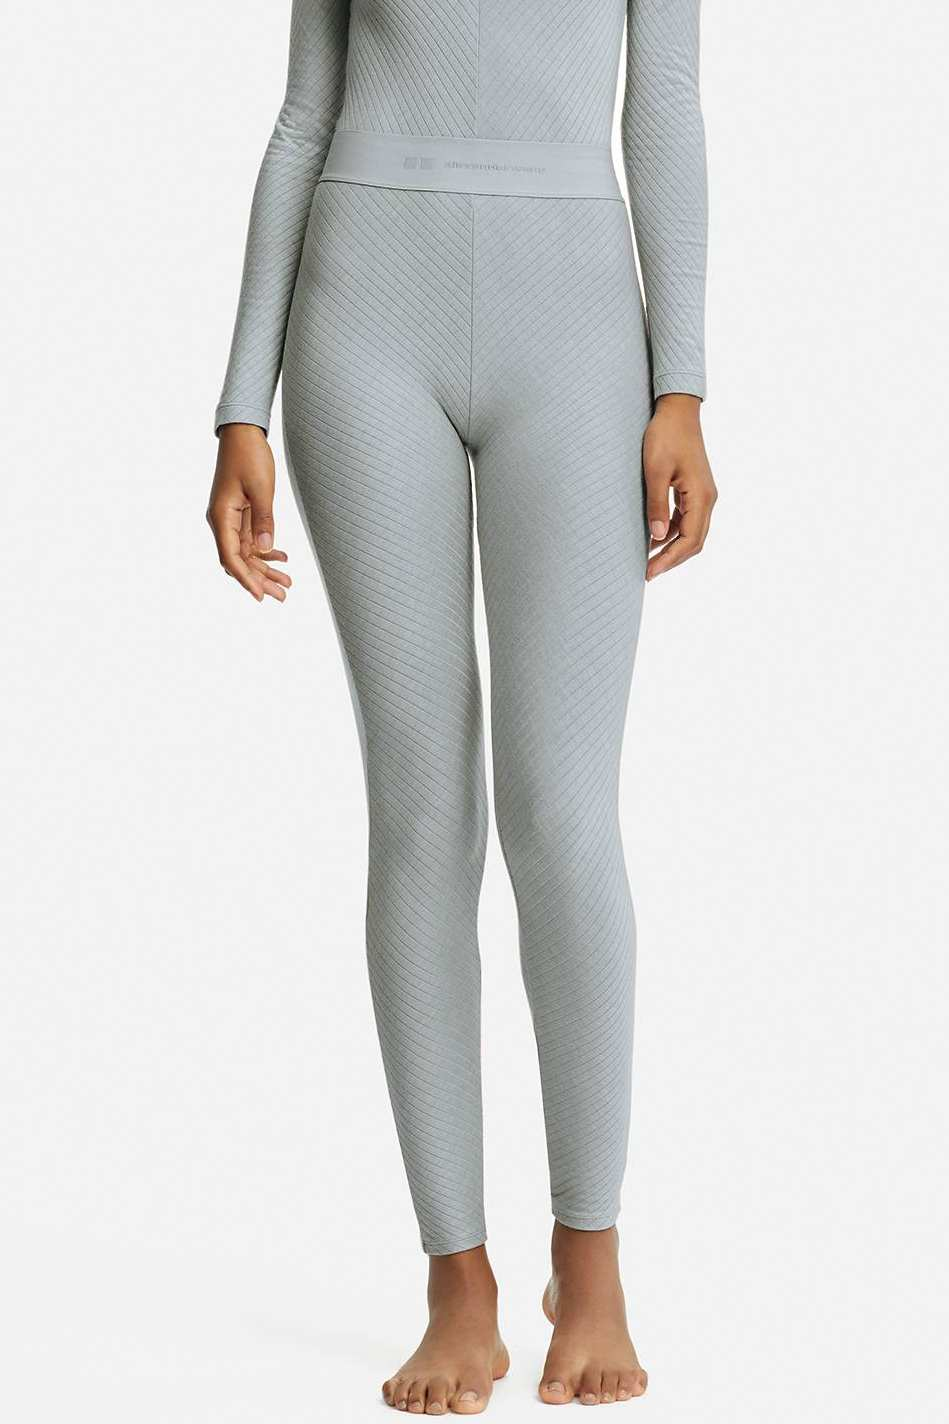 Uniqlo Women's Heattech Extra Warm Leggings by Alexander Wang